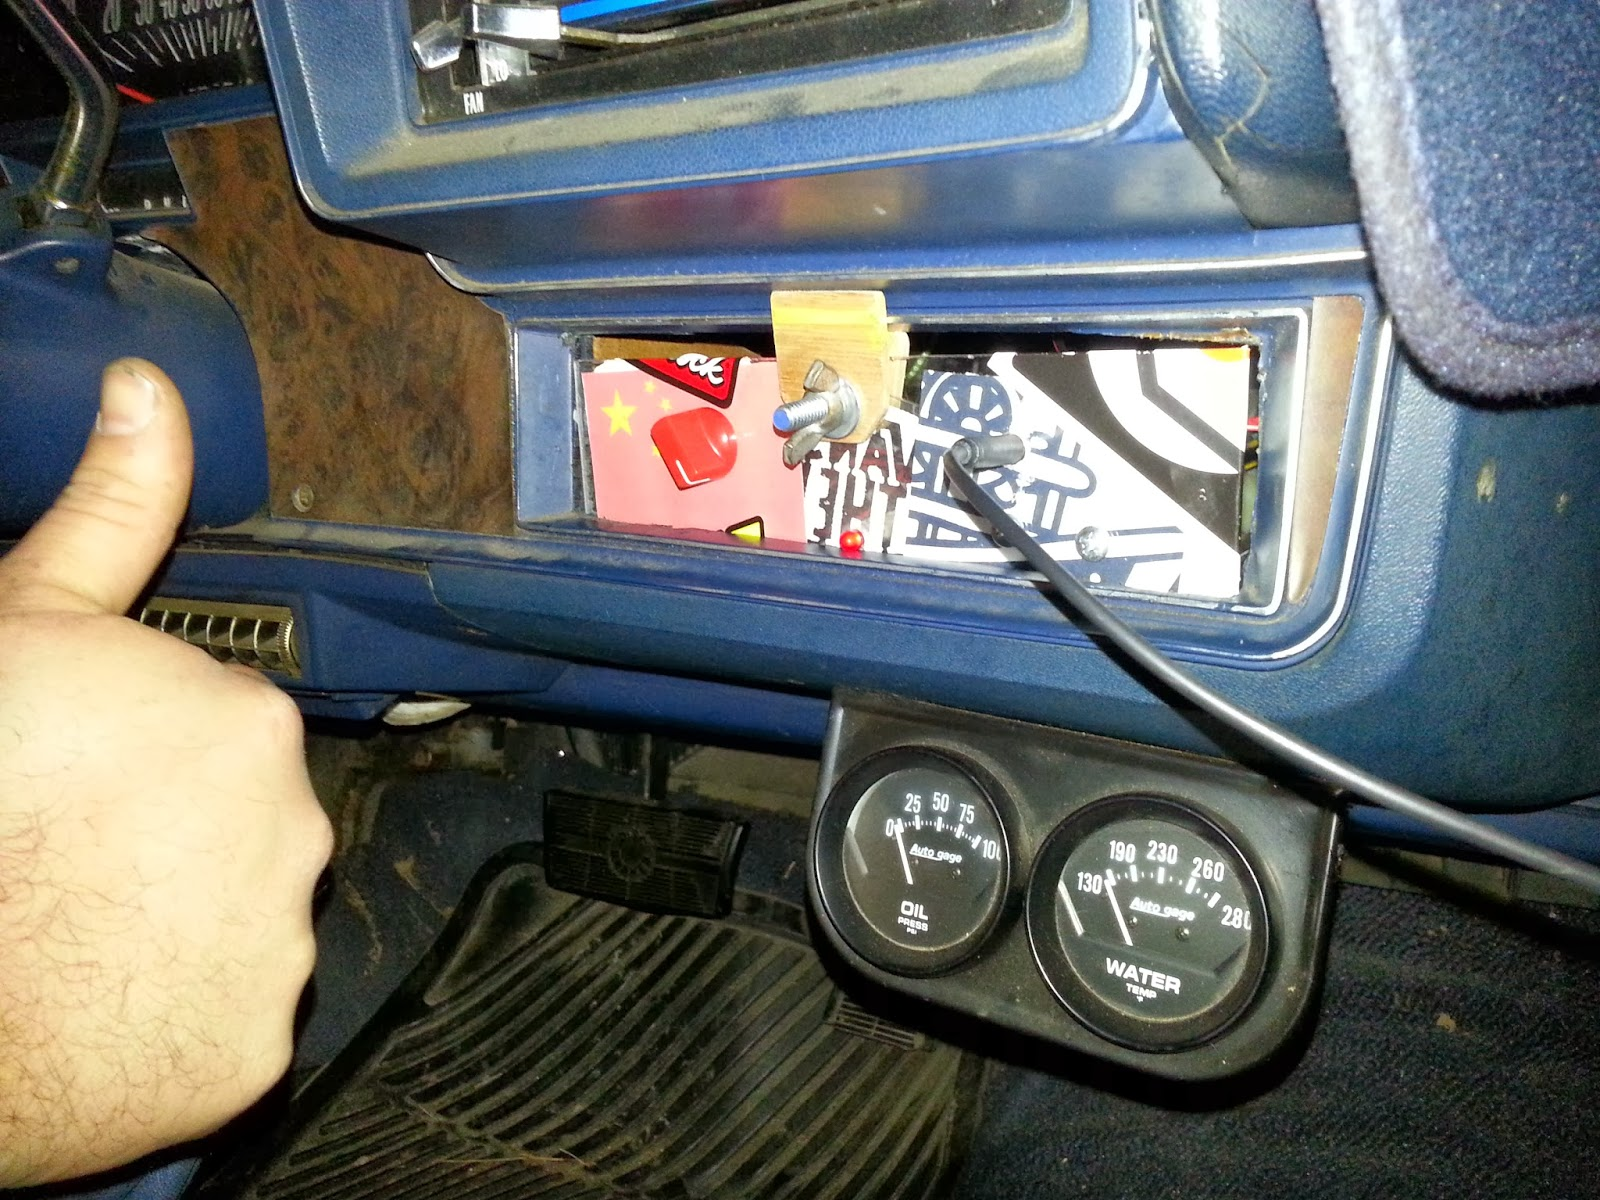 Cheap-n-Easy Car Stereo Project #2   WD's Tech Blog